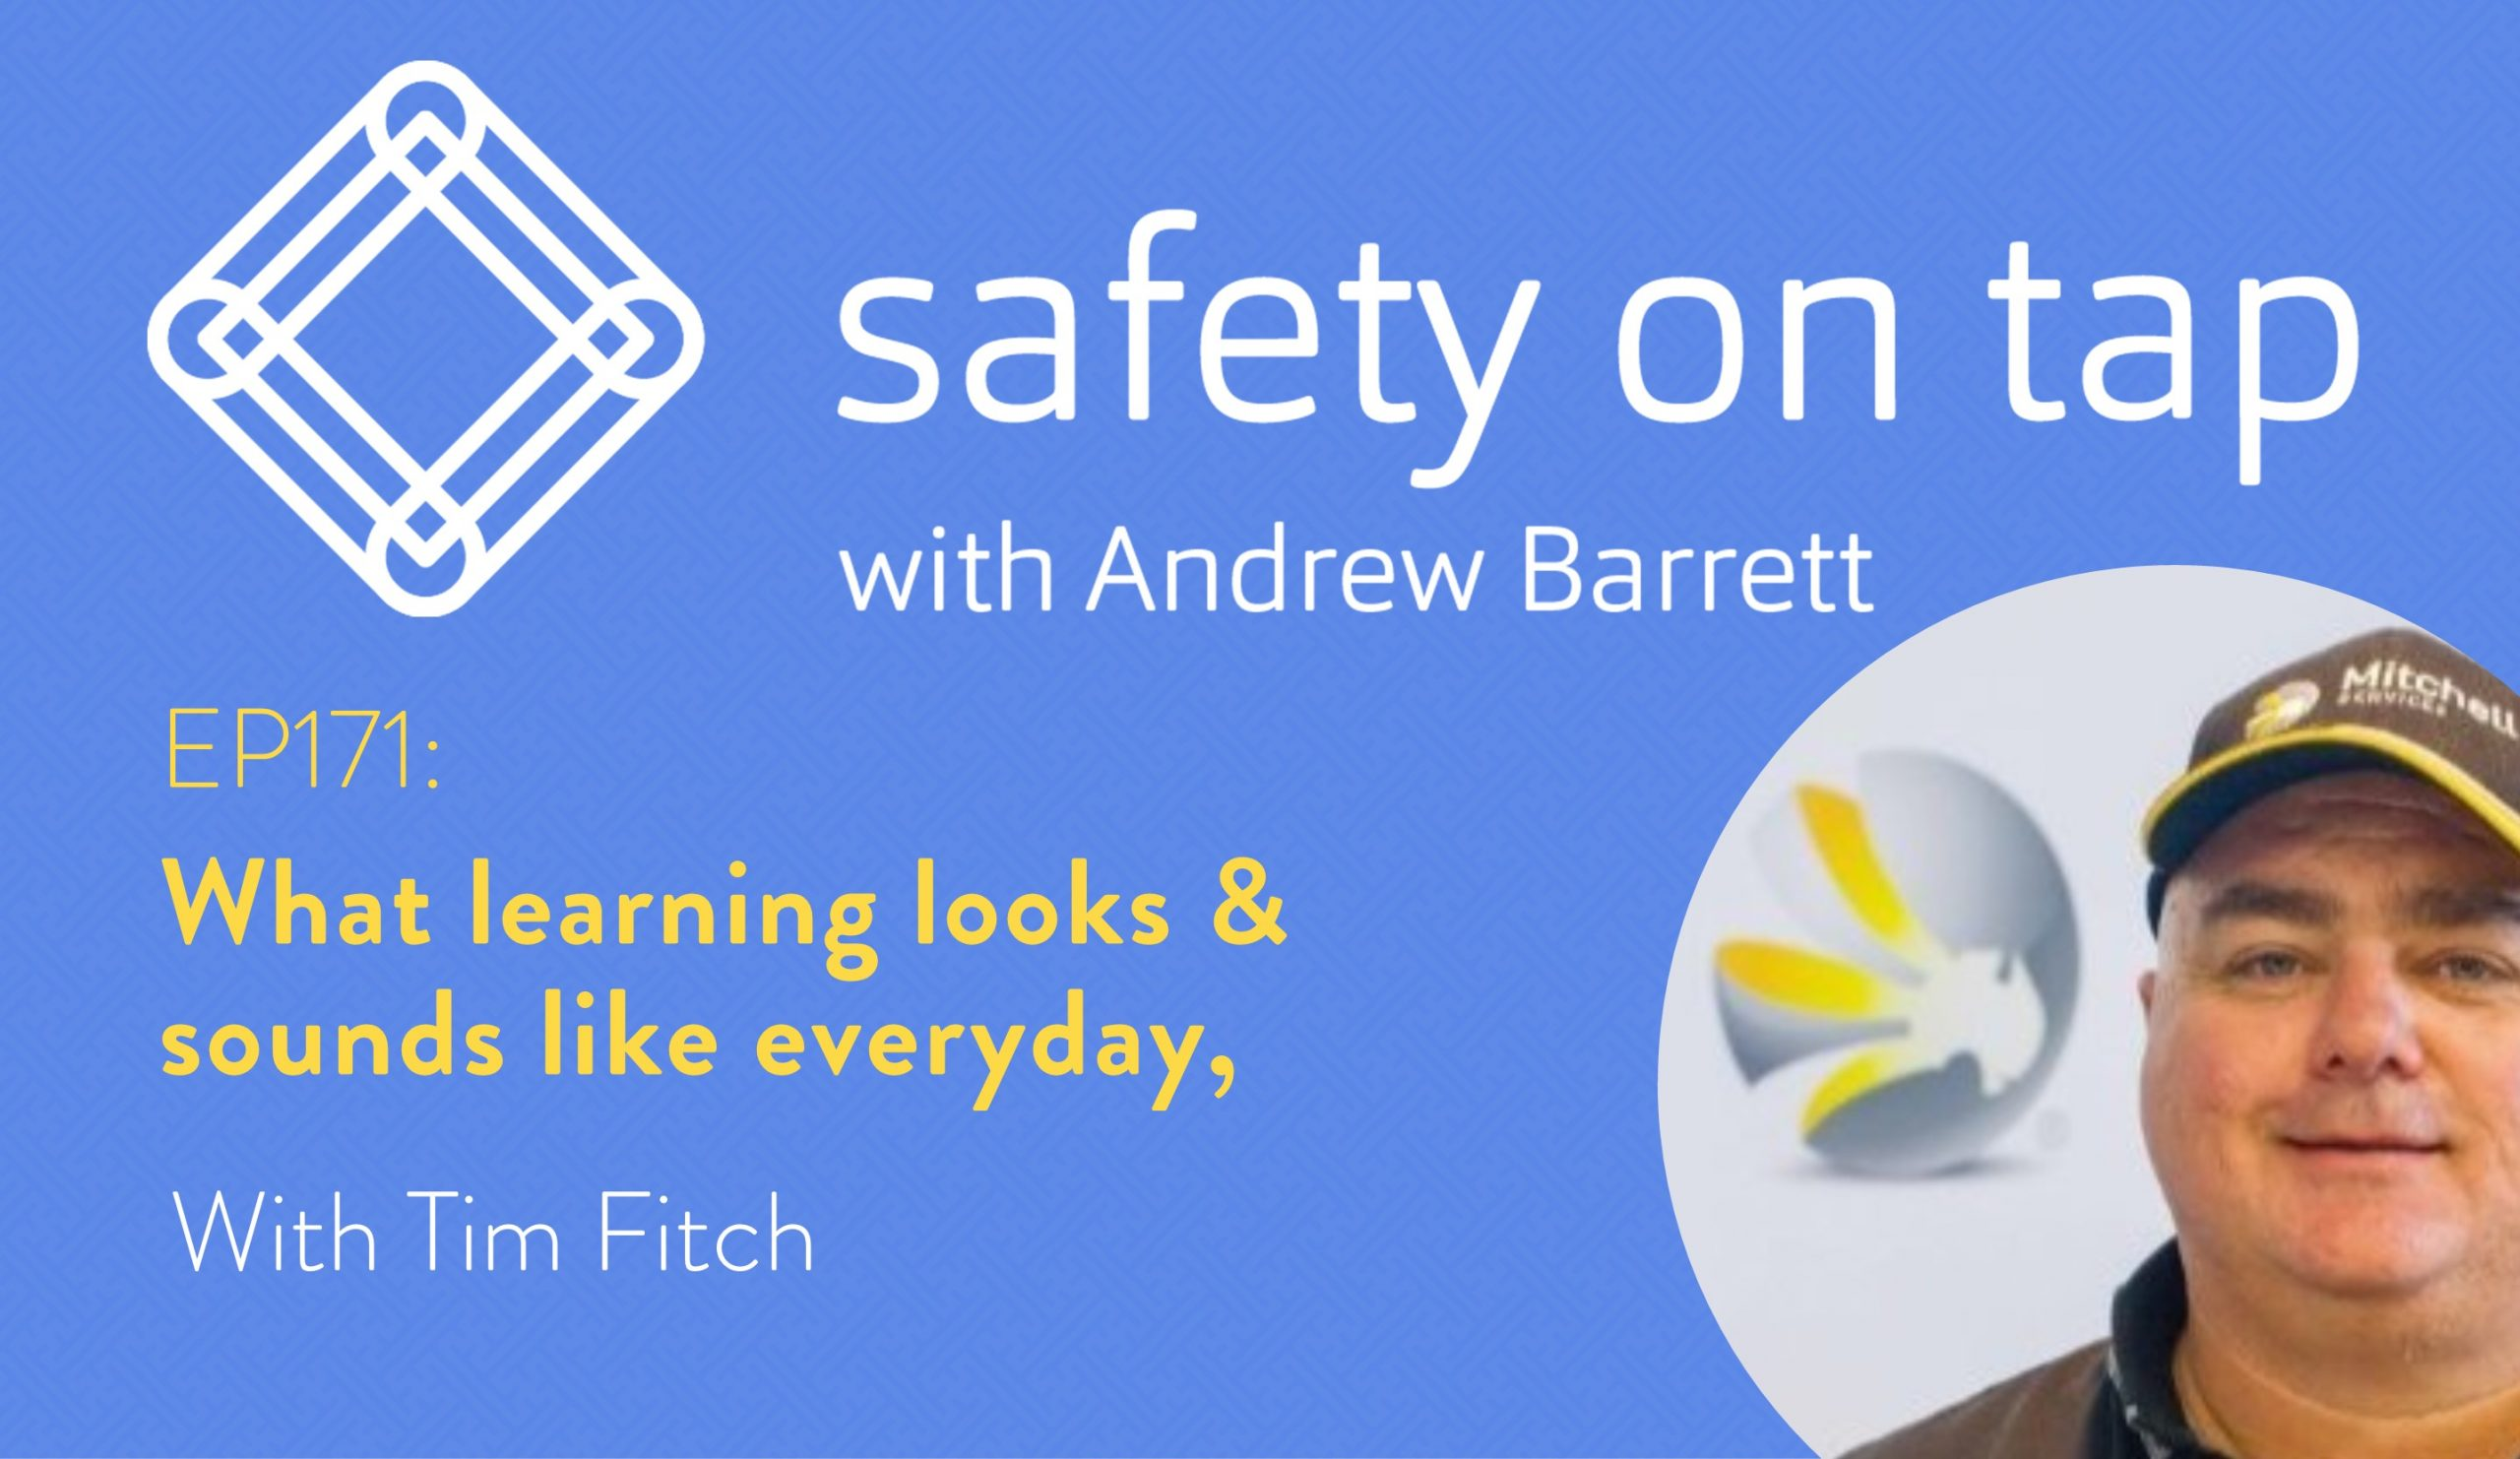 Ep 171: What learning looks & sounds like everyday, with Tim Fitch